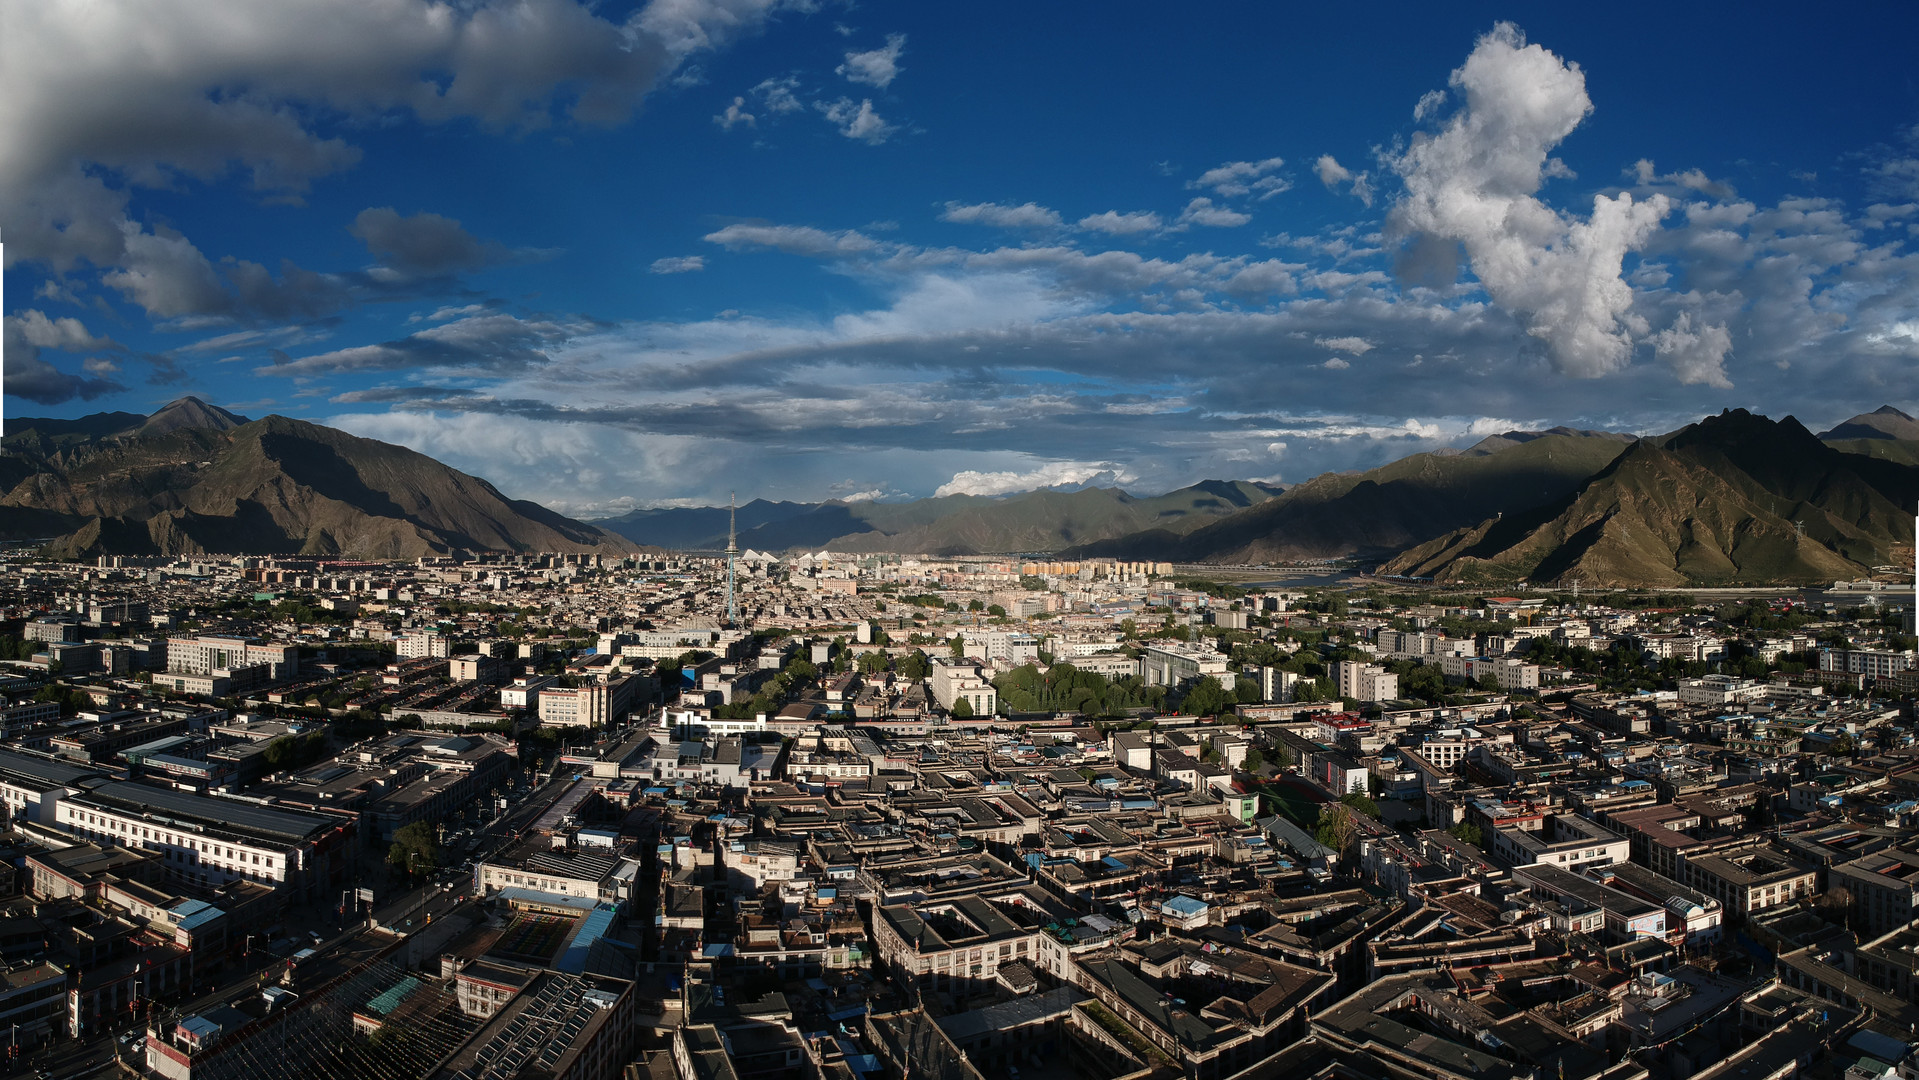 Drone shot in Lhasa